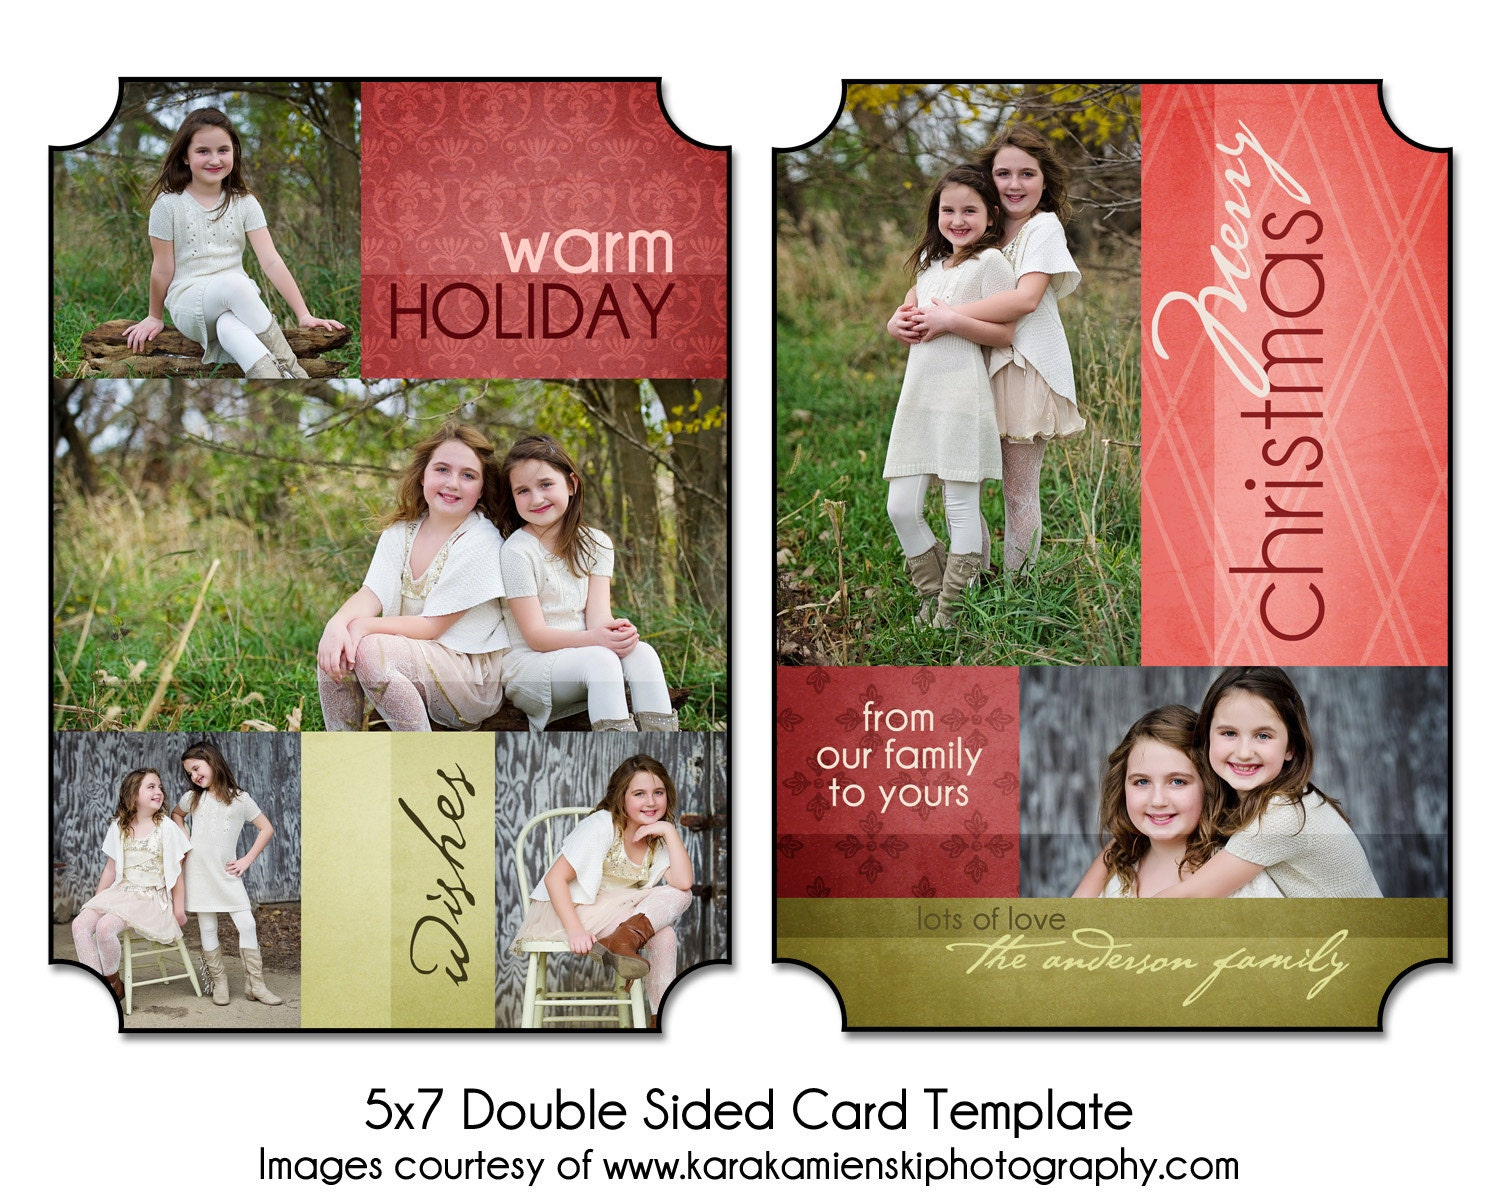 christmas card template warm holiday 5x7 double sided card. Black Bedroom Furniture Sets. Home Design Ideas